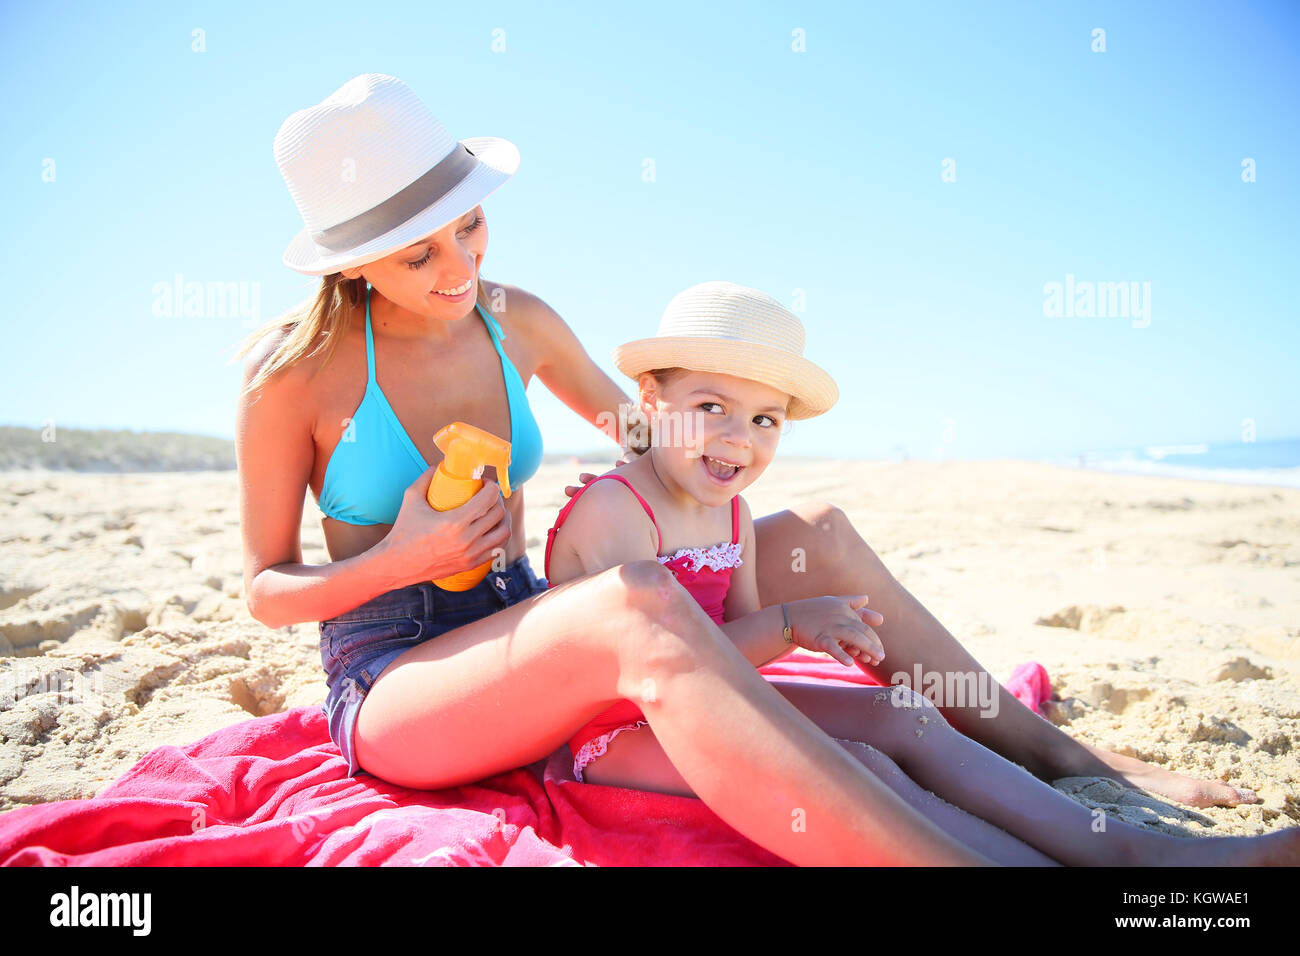 Woman applying sunscreen on daughter's body - Stock Image